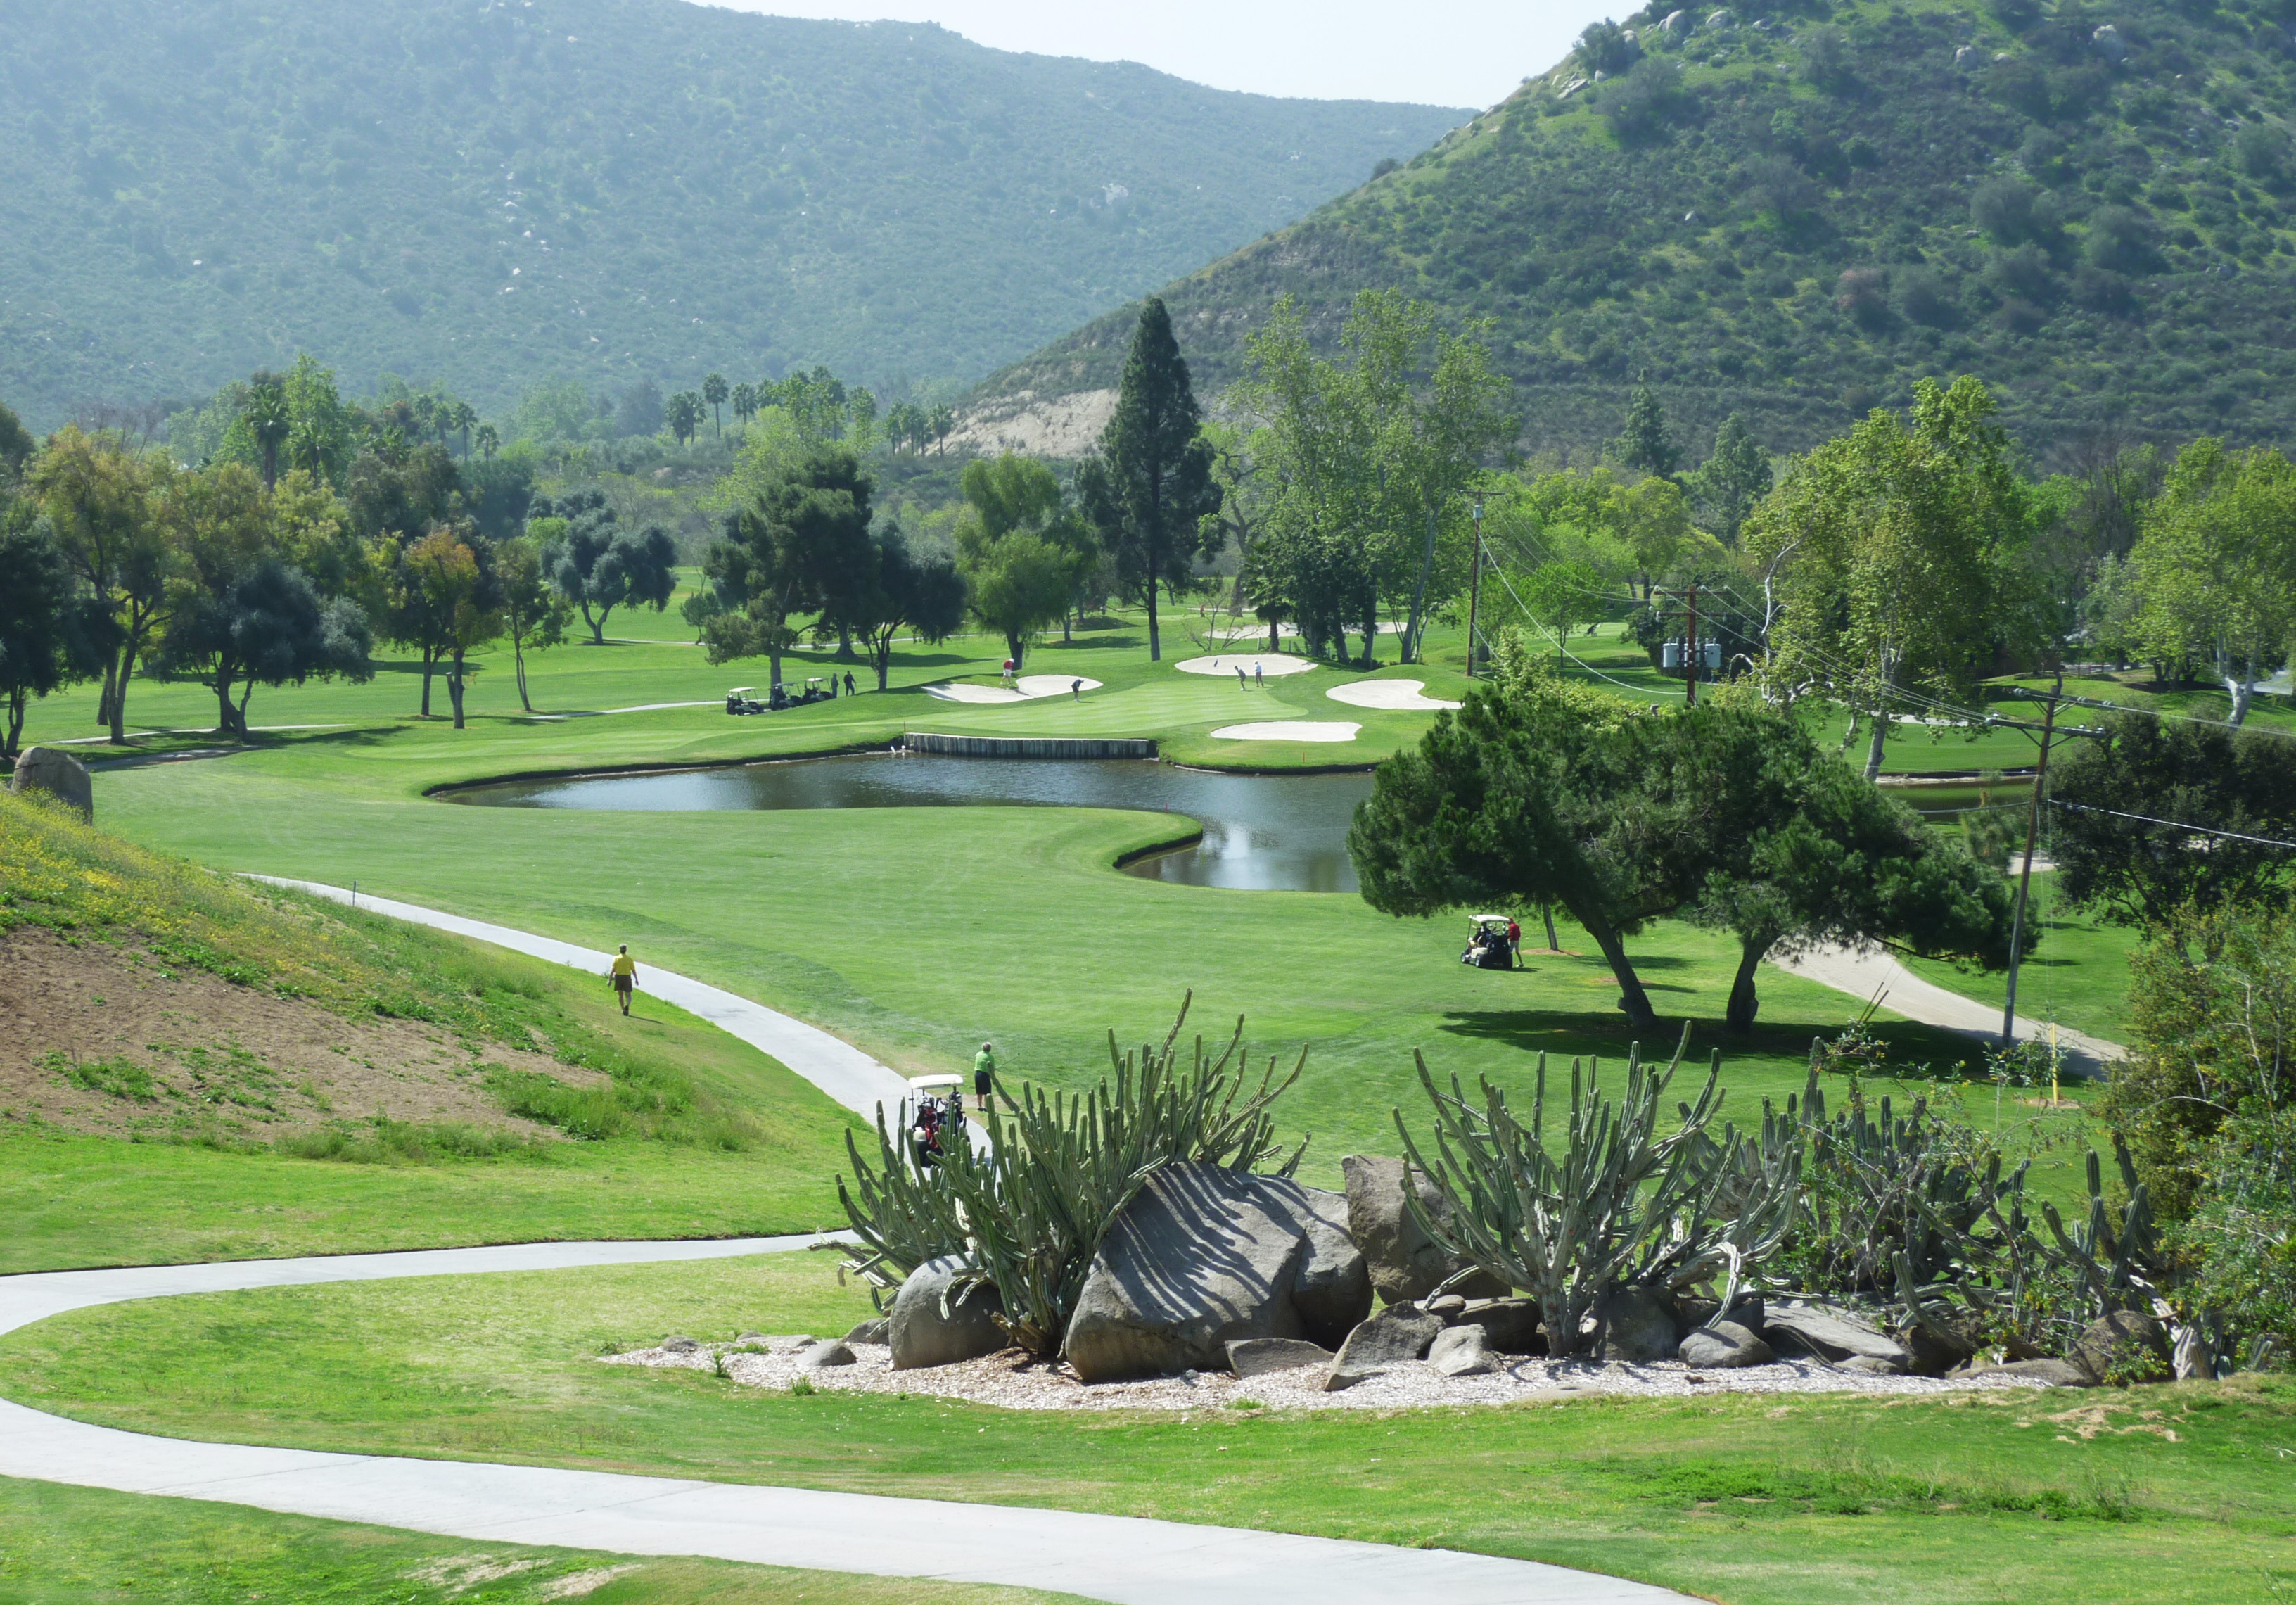 San Diego Golf: San Diego golf courses, ratings and ...